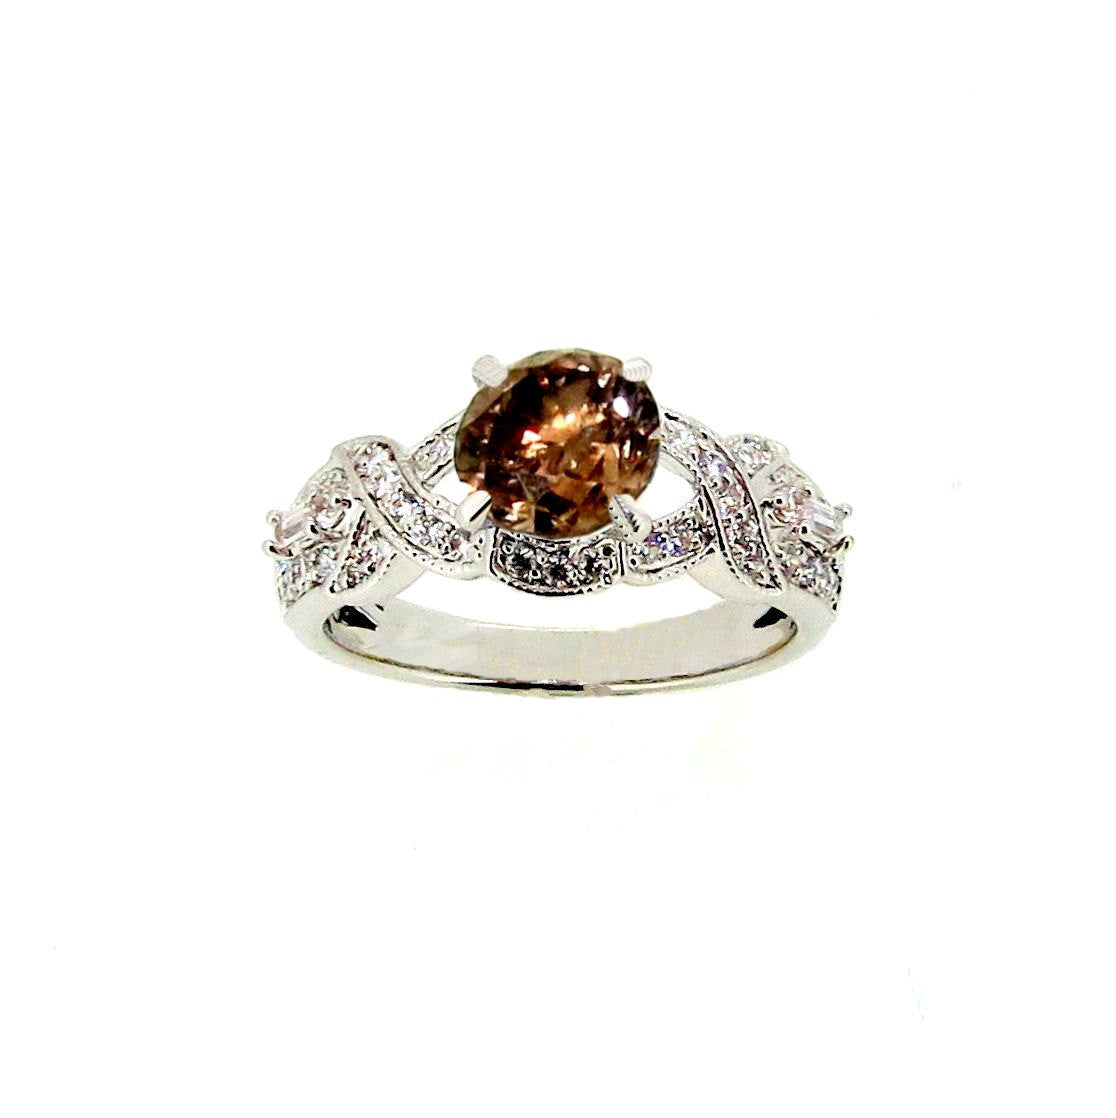 Unique Infinity Design 1 Carat Fancy Color Brown Diamond with White Diamond Accent Engagement Ring, Anniversary Ring - BD73039